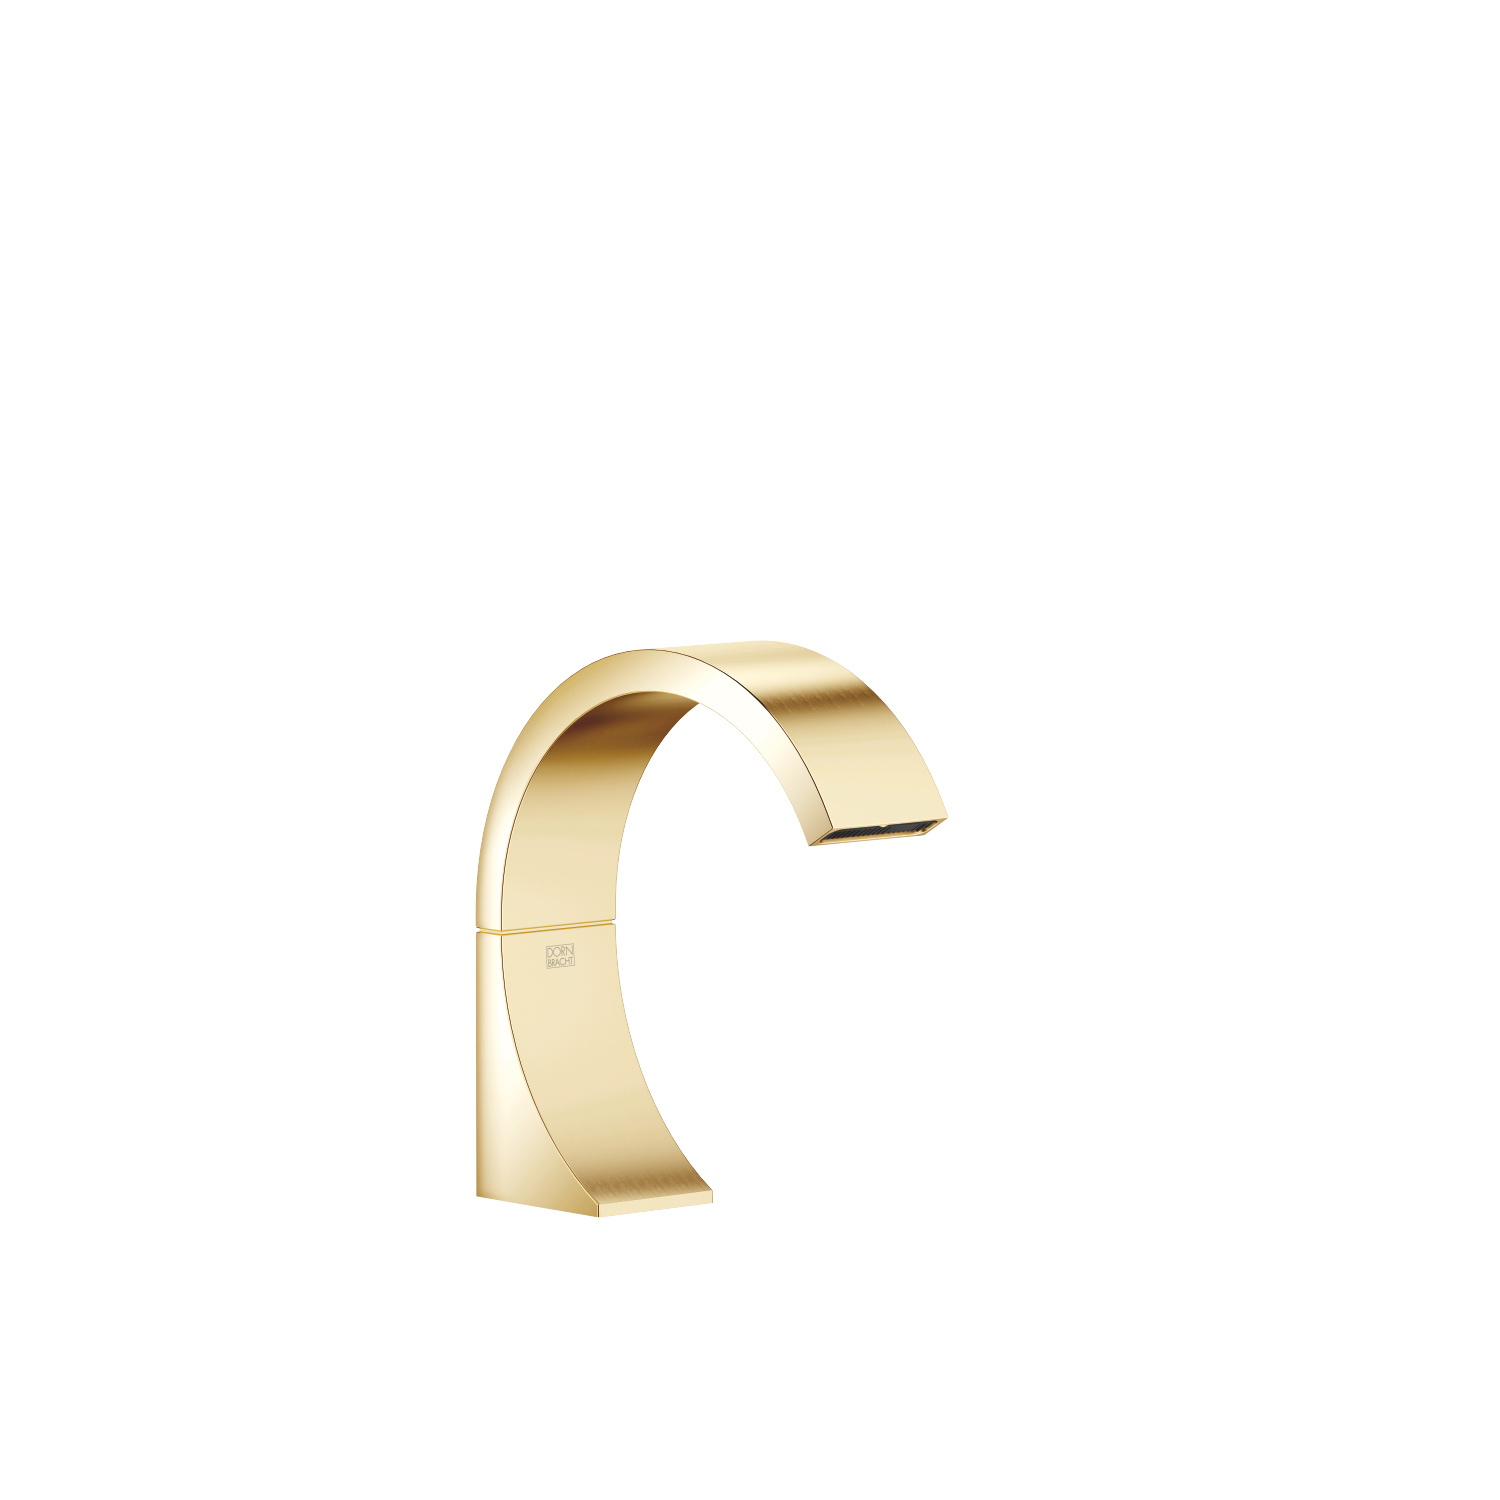 Deck-mounted basin spout without pop-up waste - Durabrass / brushed Durabrass